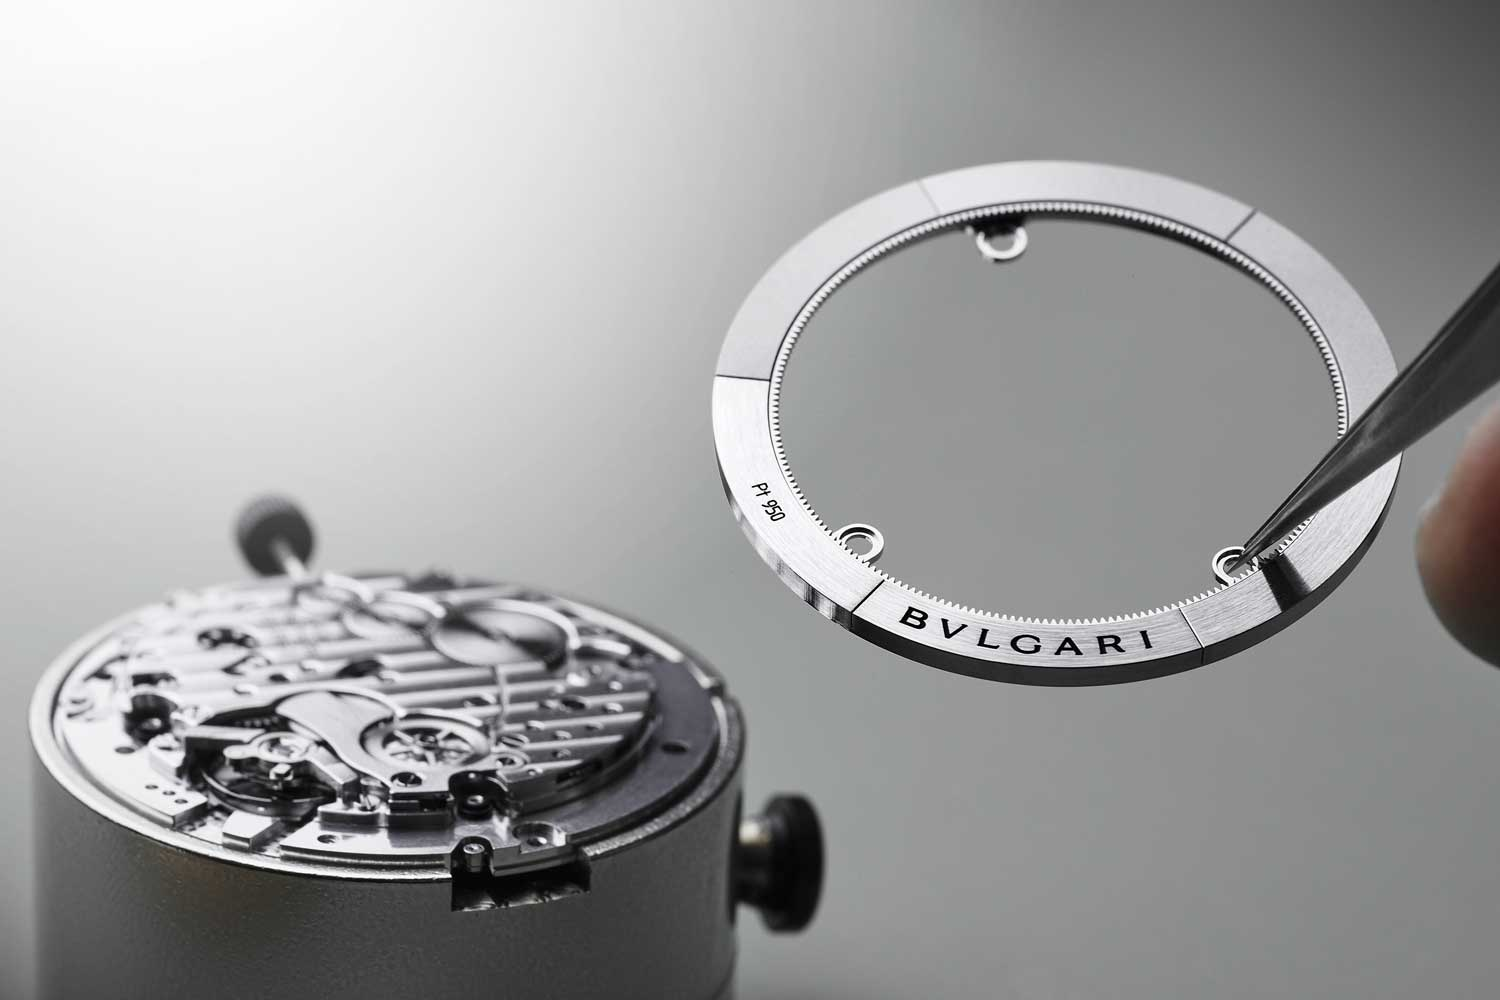 The platinum and aluminum periphery rotor of the BVL 318 movement powering the Octo Finissimo Chronograph GMT Automatic